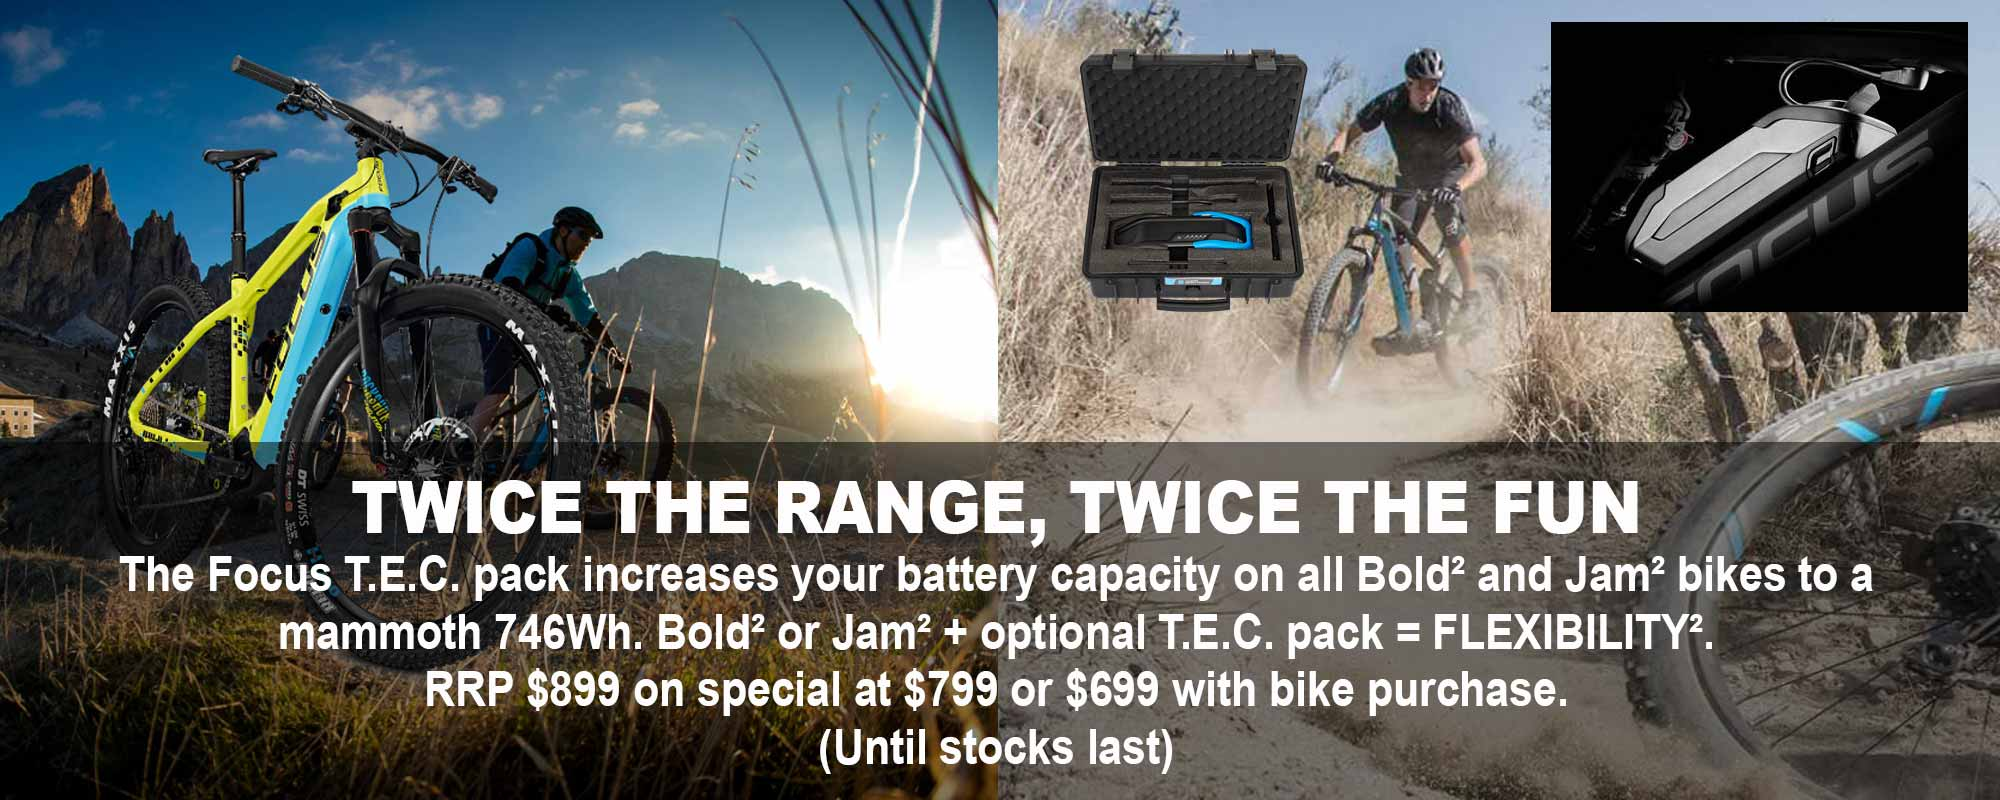 Focus TEC battery pack special deal